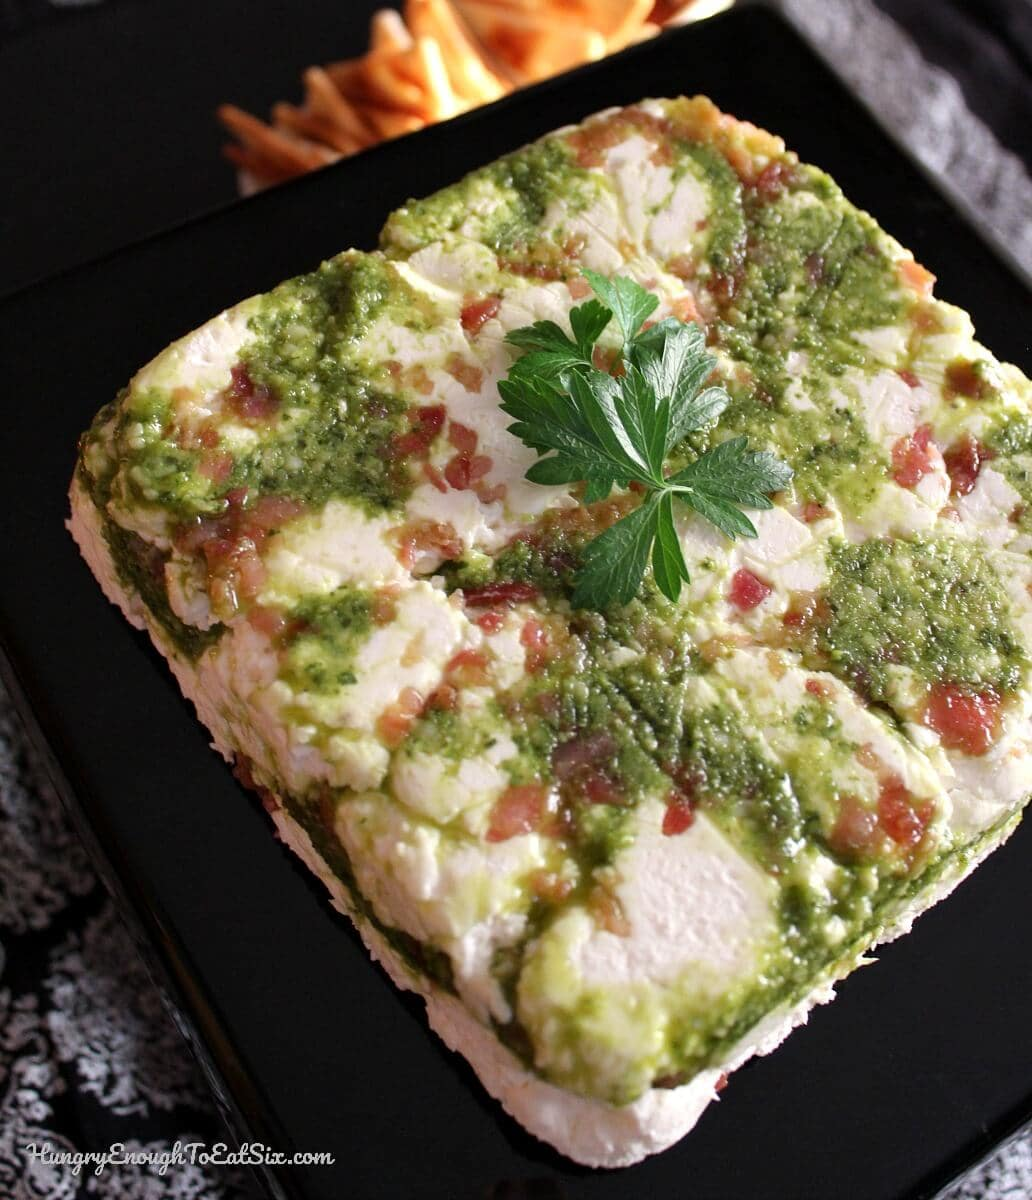 A tantalizing appetizer! Layers of smoky bacon and bright pesto combined with a cream cheese-Parmesan blend.